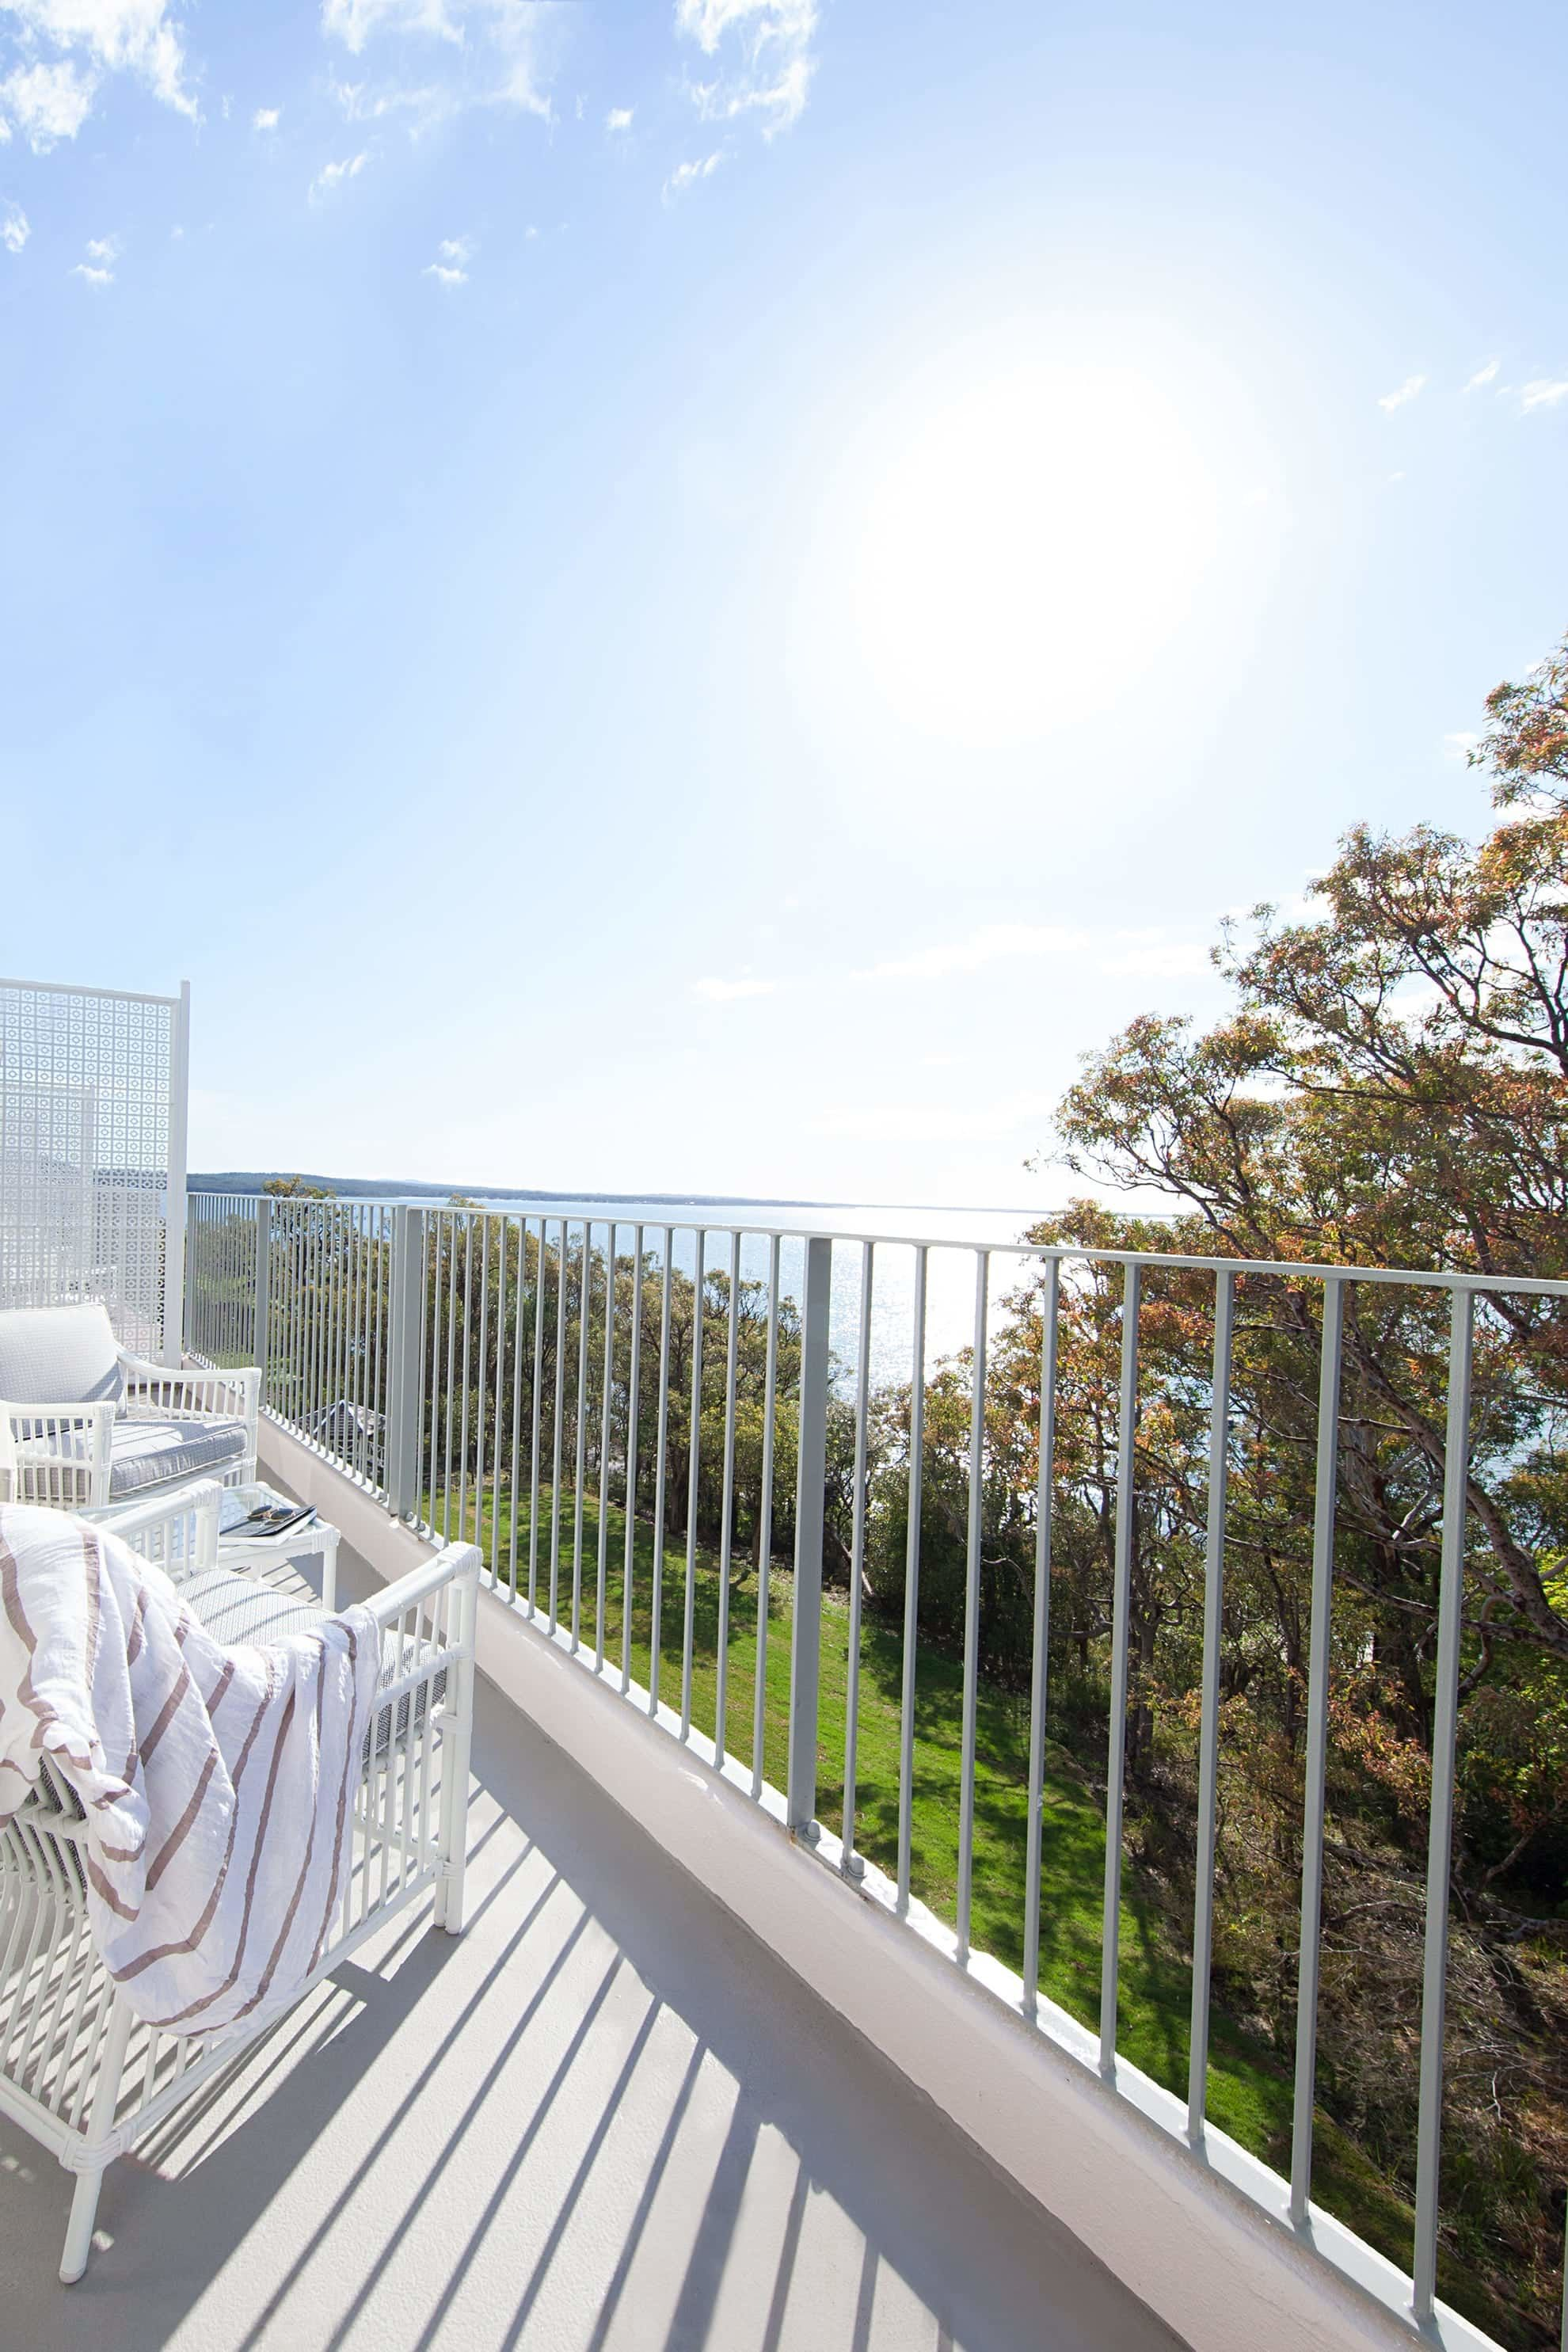 balcony view onto grass and bright blue skies